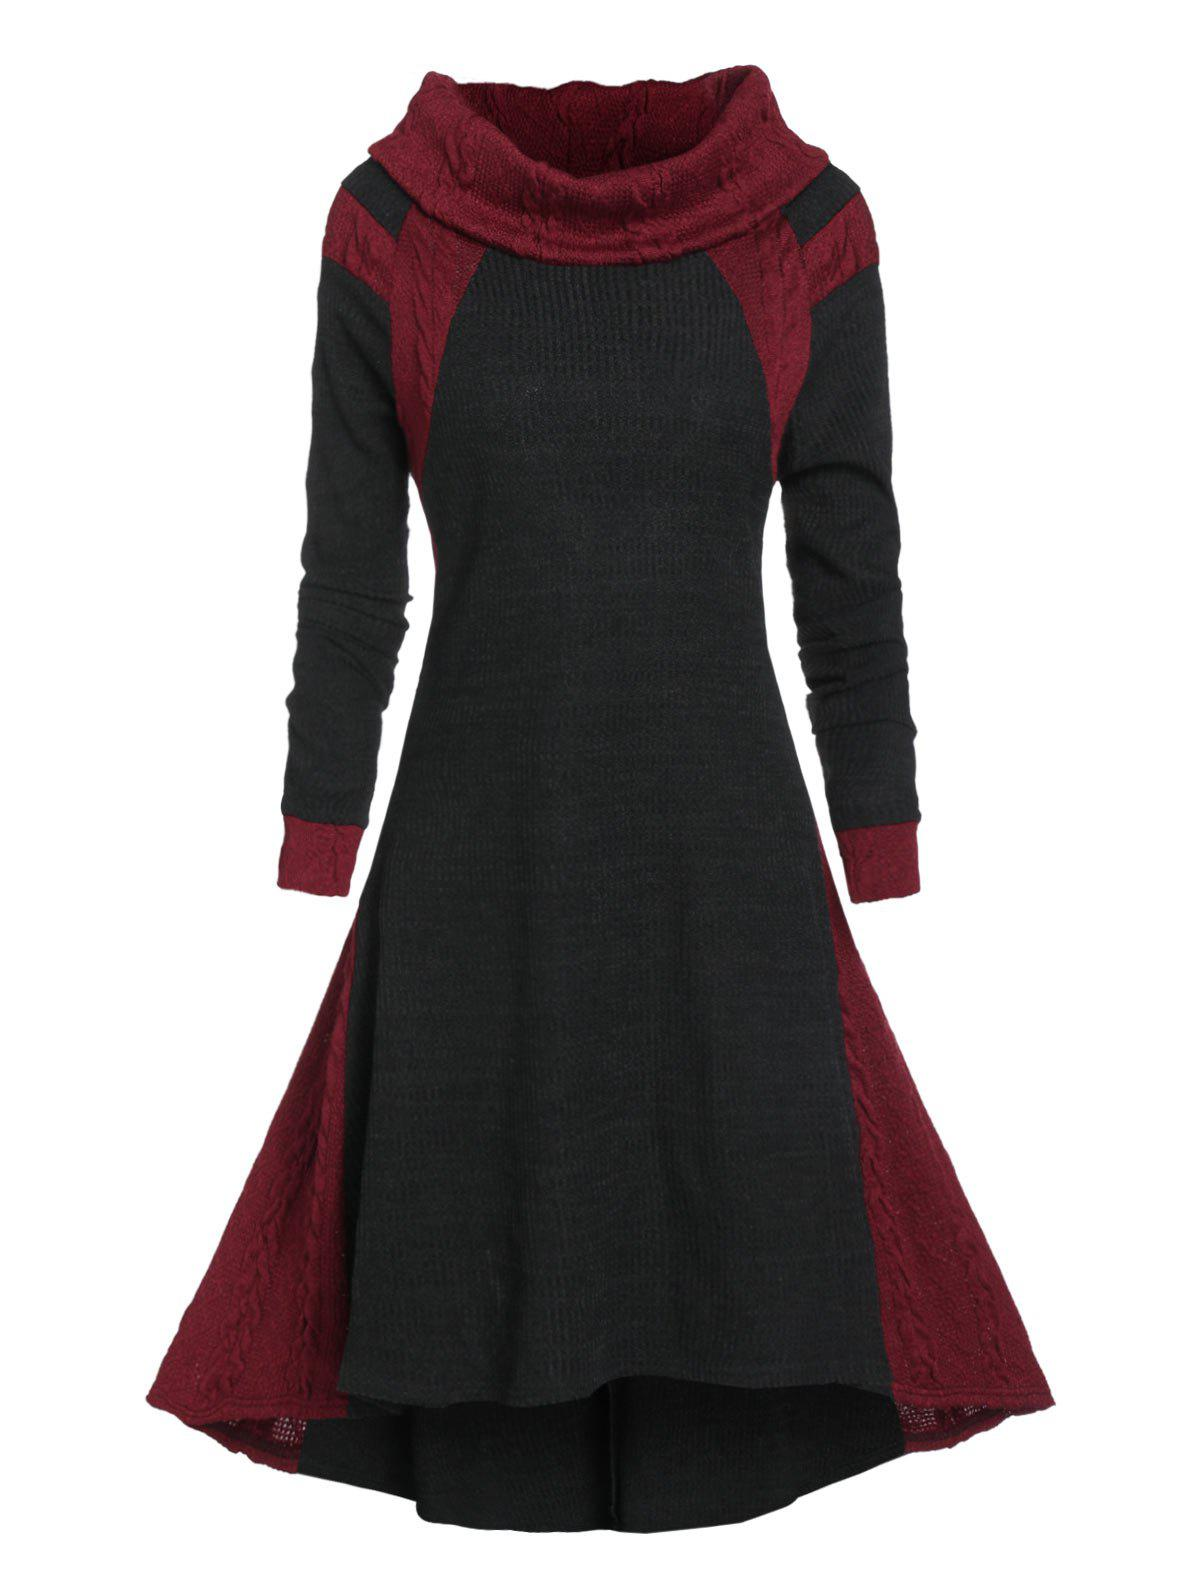 Contrast Color High Low Cable Knit Sweater Dress - multicolor A 2XL